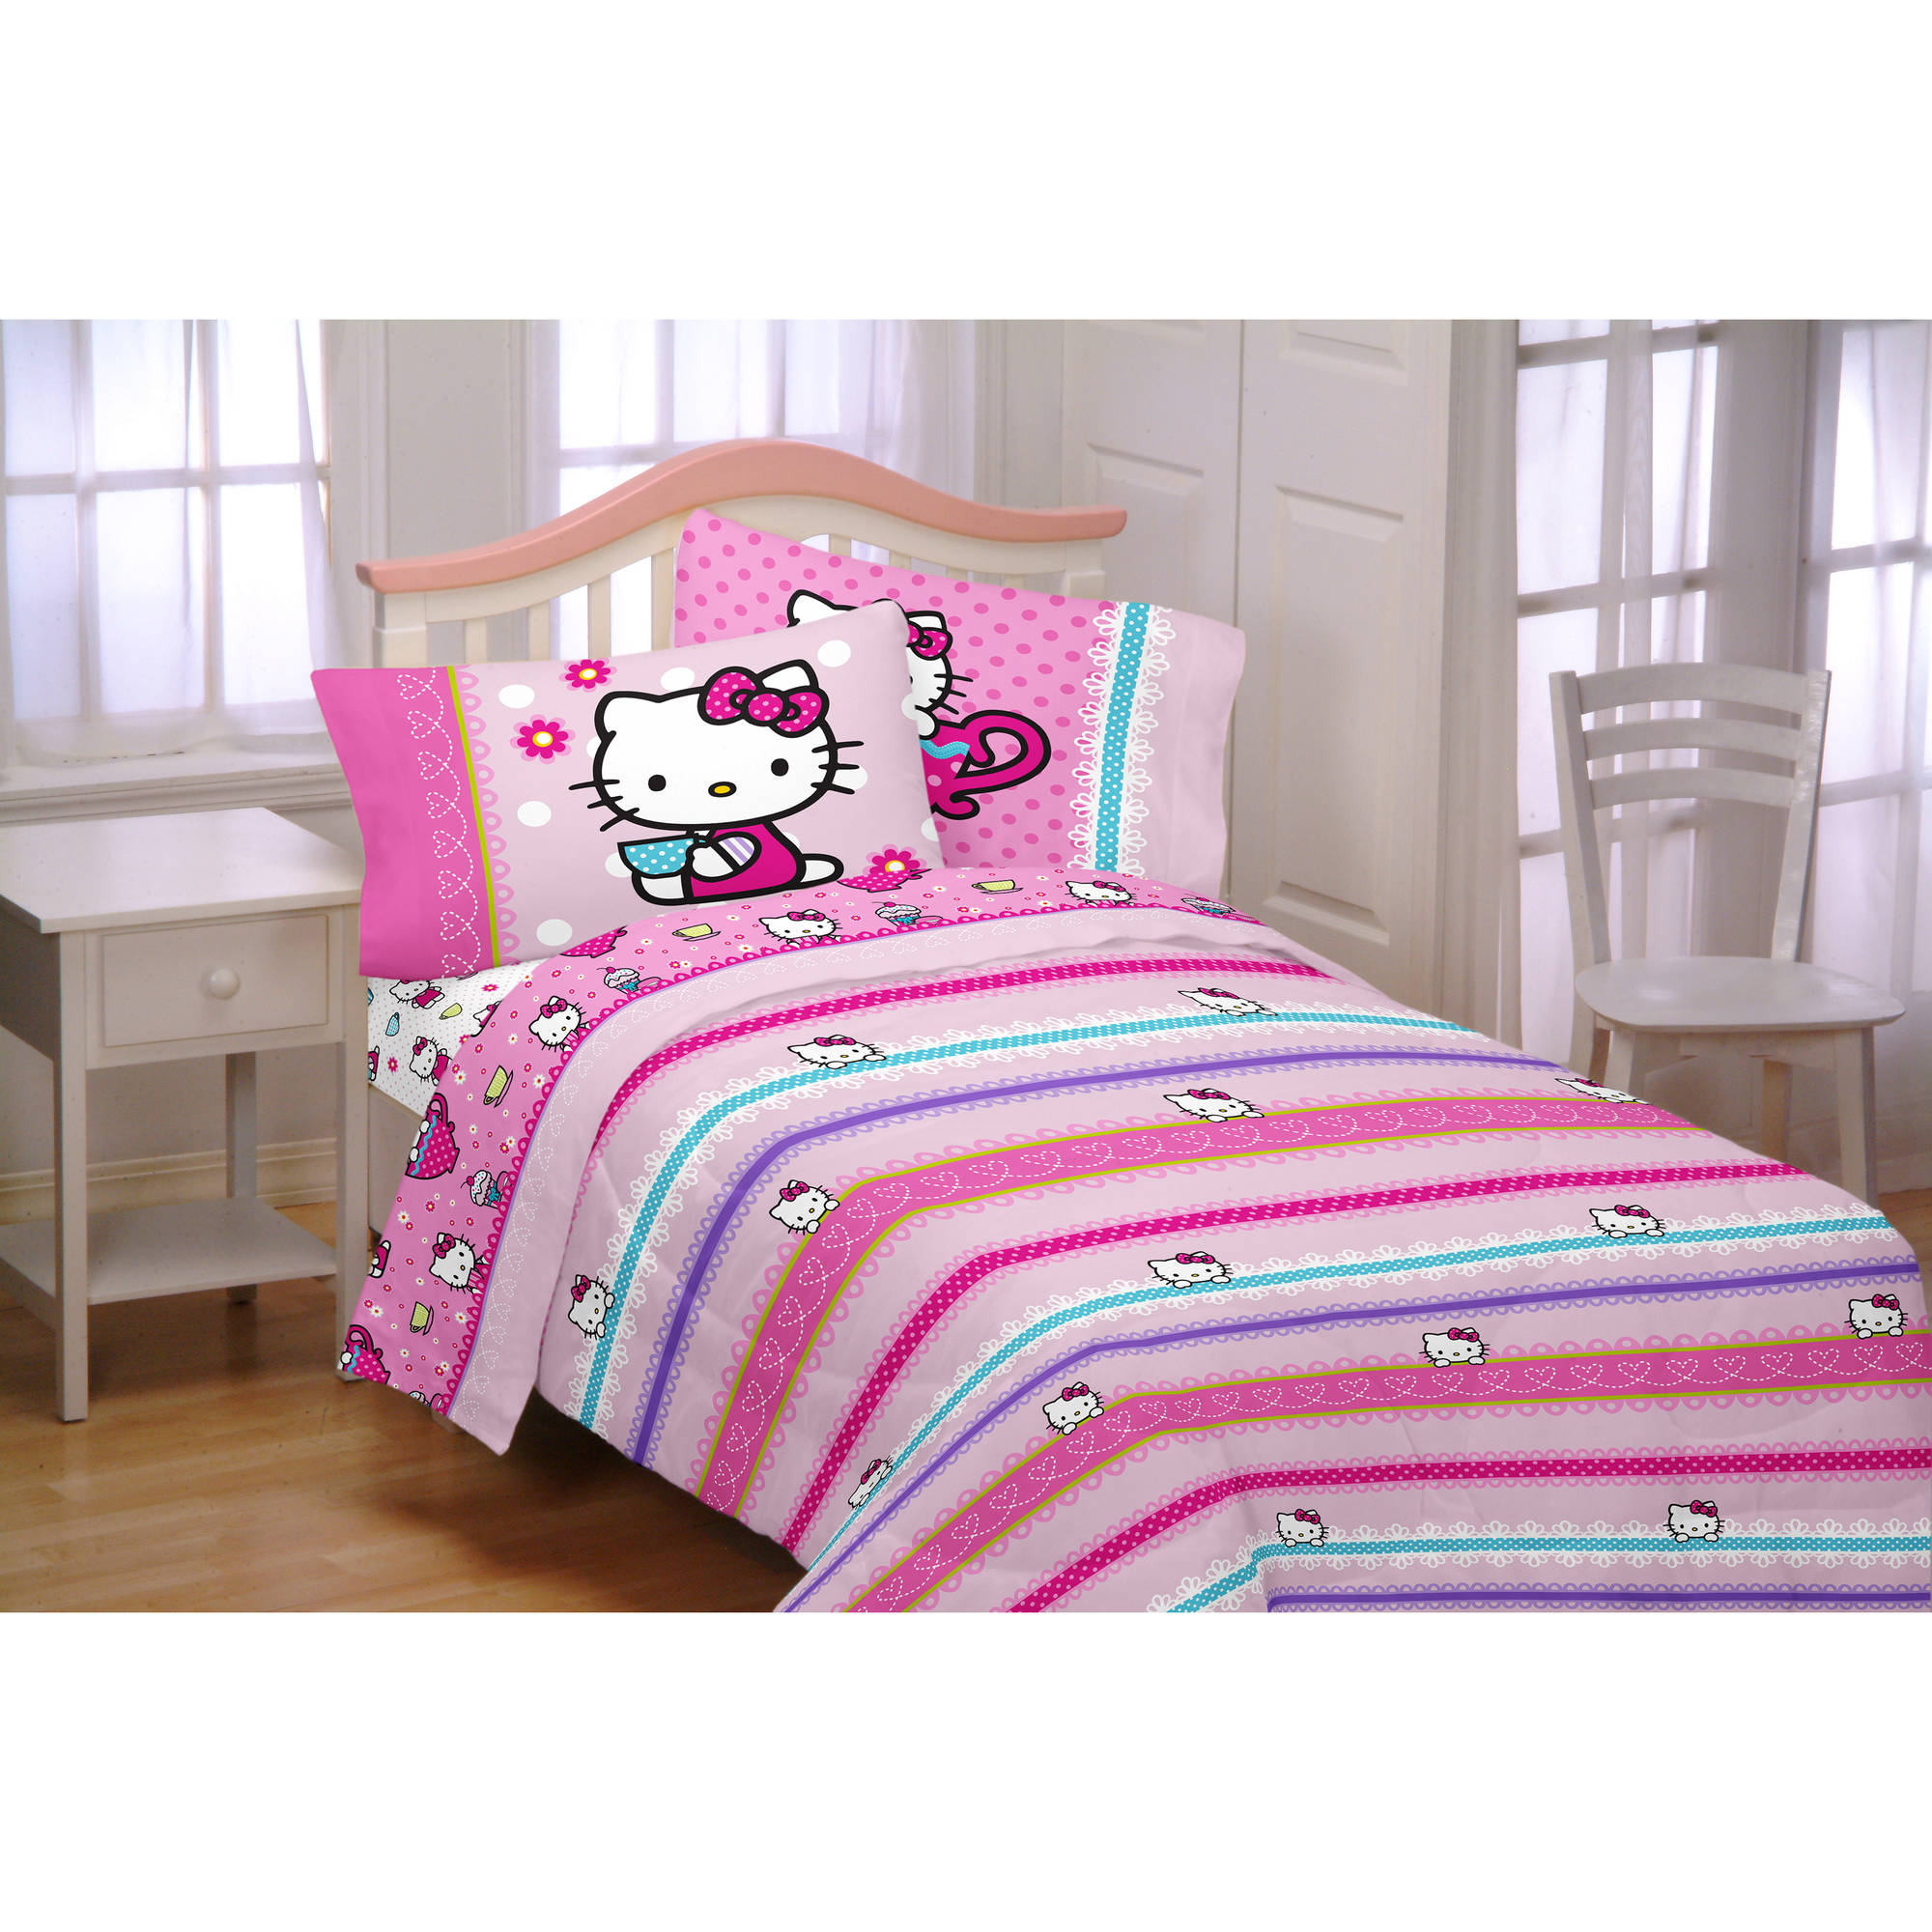 Hello Kitty Reversible Twin Bed in a Bag Bedding Set Walmart